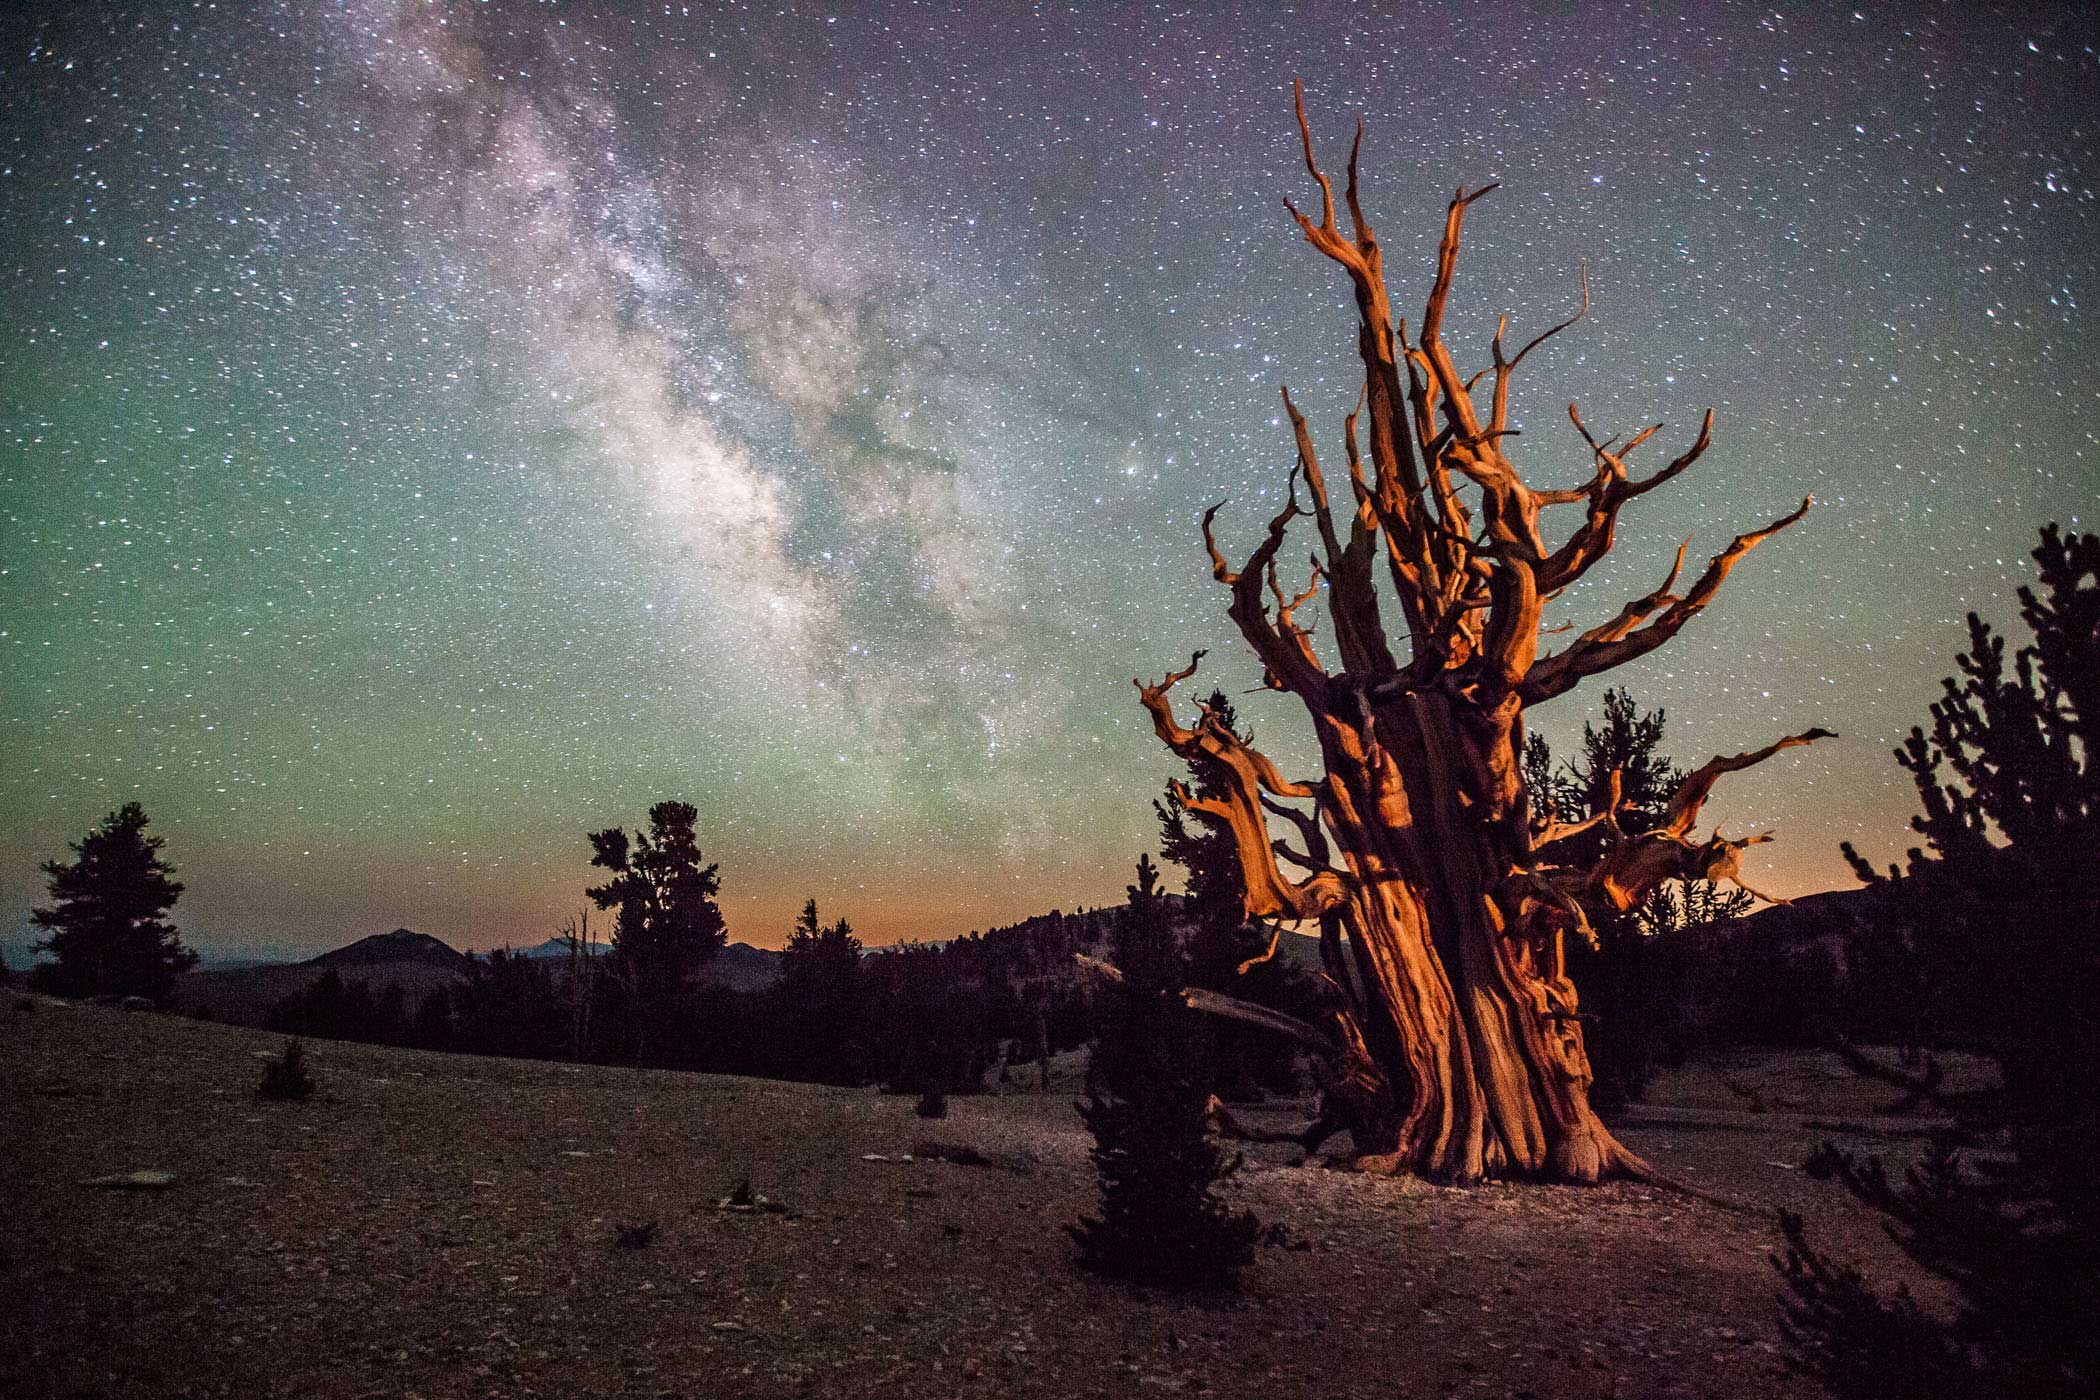 Earth and space are evenly weighted in this wonderfully framed image of a Californian landscape beneath the Milky Way.  The young photographer has chosen a view of an ancient bristlecone pine which is over 4,000 years old, and whose sloping trunk and gnarled branches provide perfect counterpoint to the edge-on view of the starry disc and knotted structure of our galaxy.